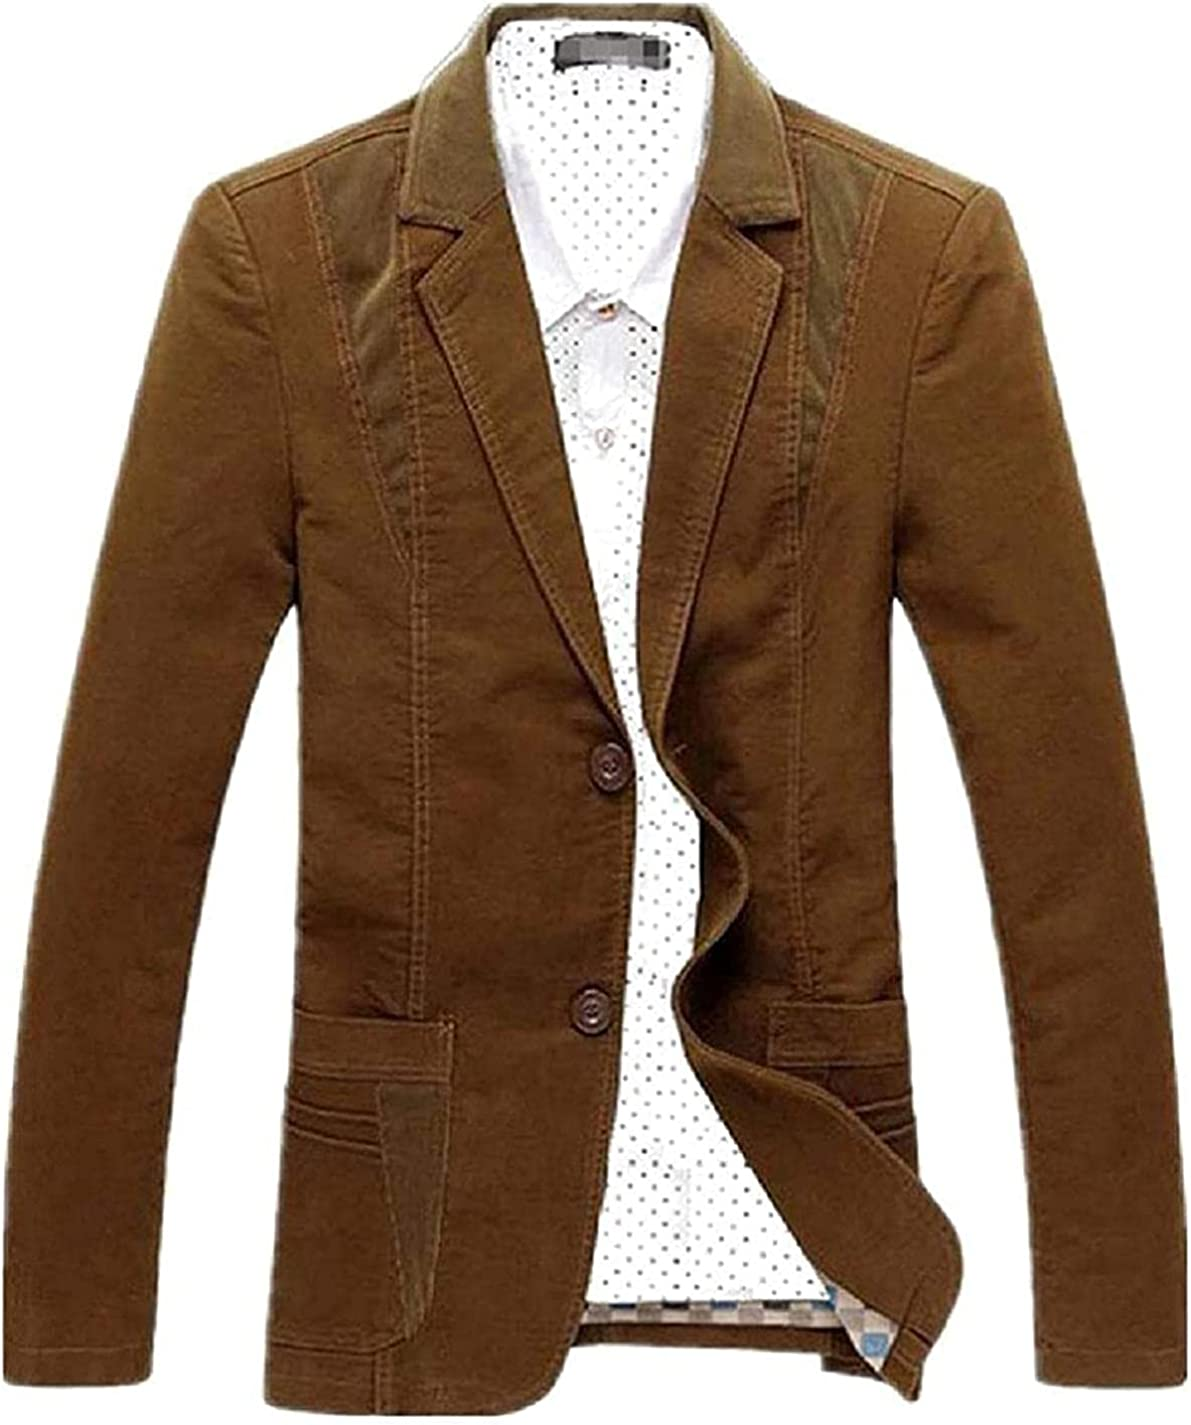 Mens Big and Tall Relaxed Fit Blazer Patchwork Back Cotton Sports Coat